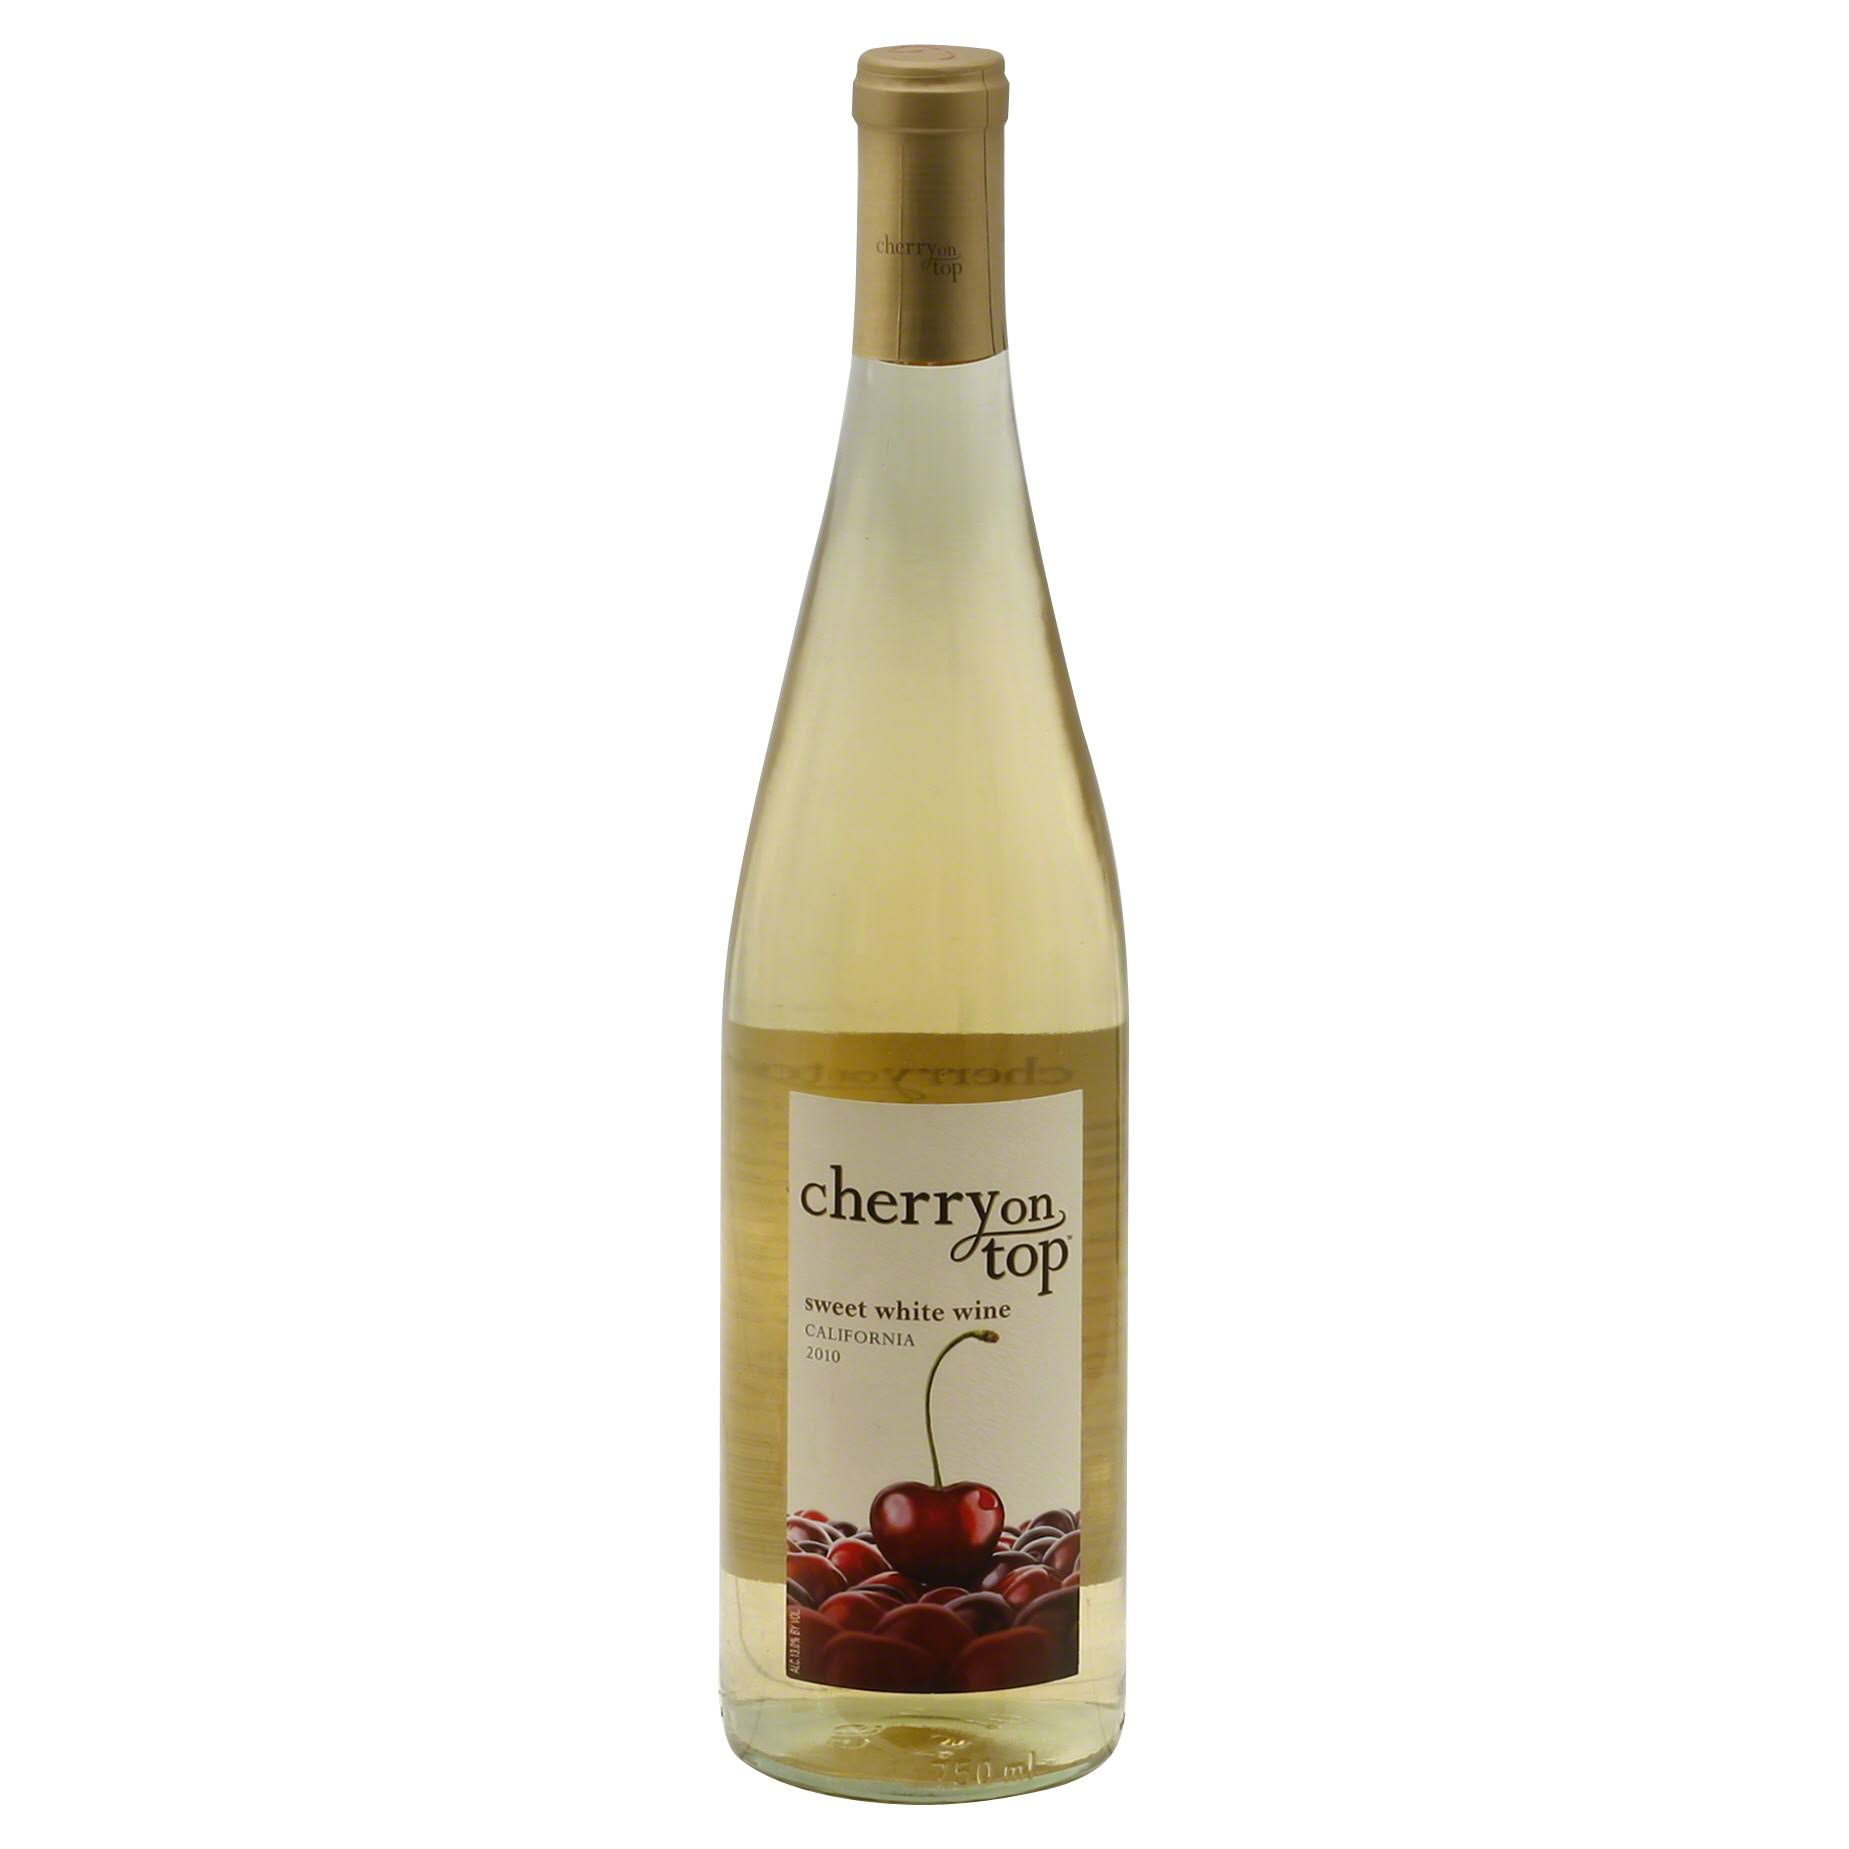 Cherry On Top Sweet White Wine, California, 2010 - 750 ml